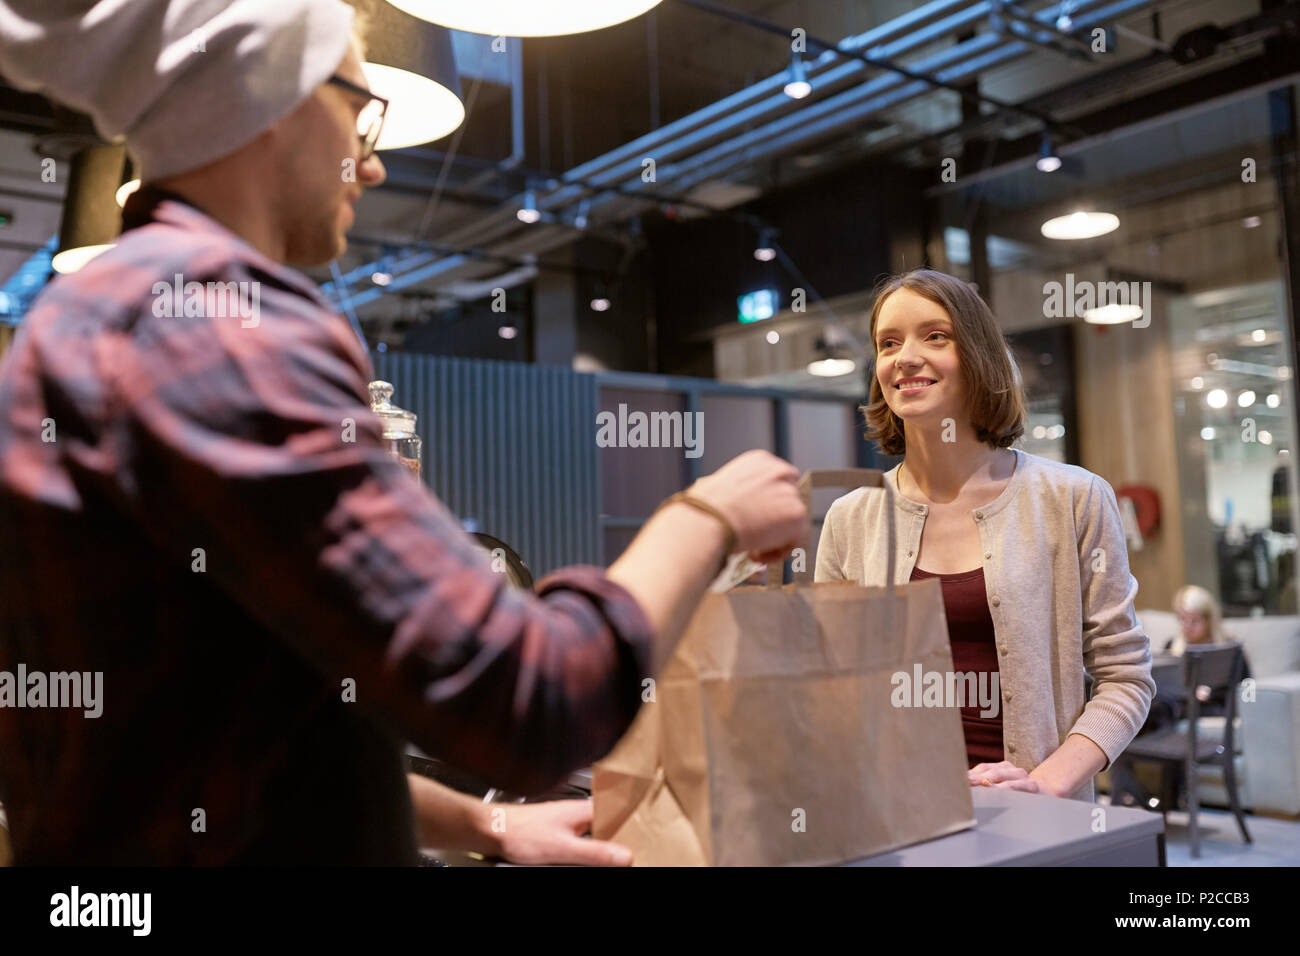 seller giving paper bag and money to woman at cafe - Stock Image